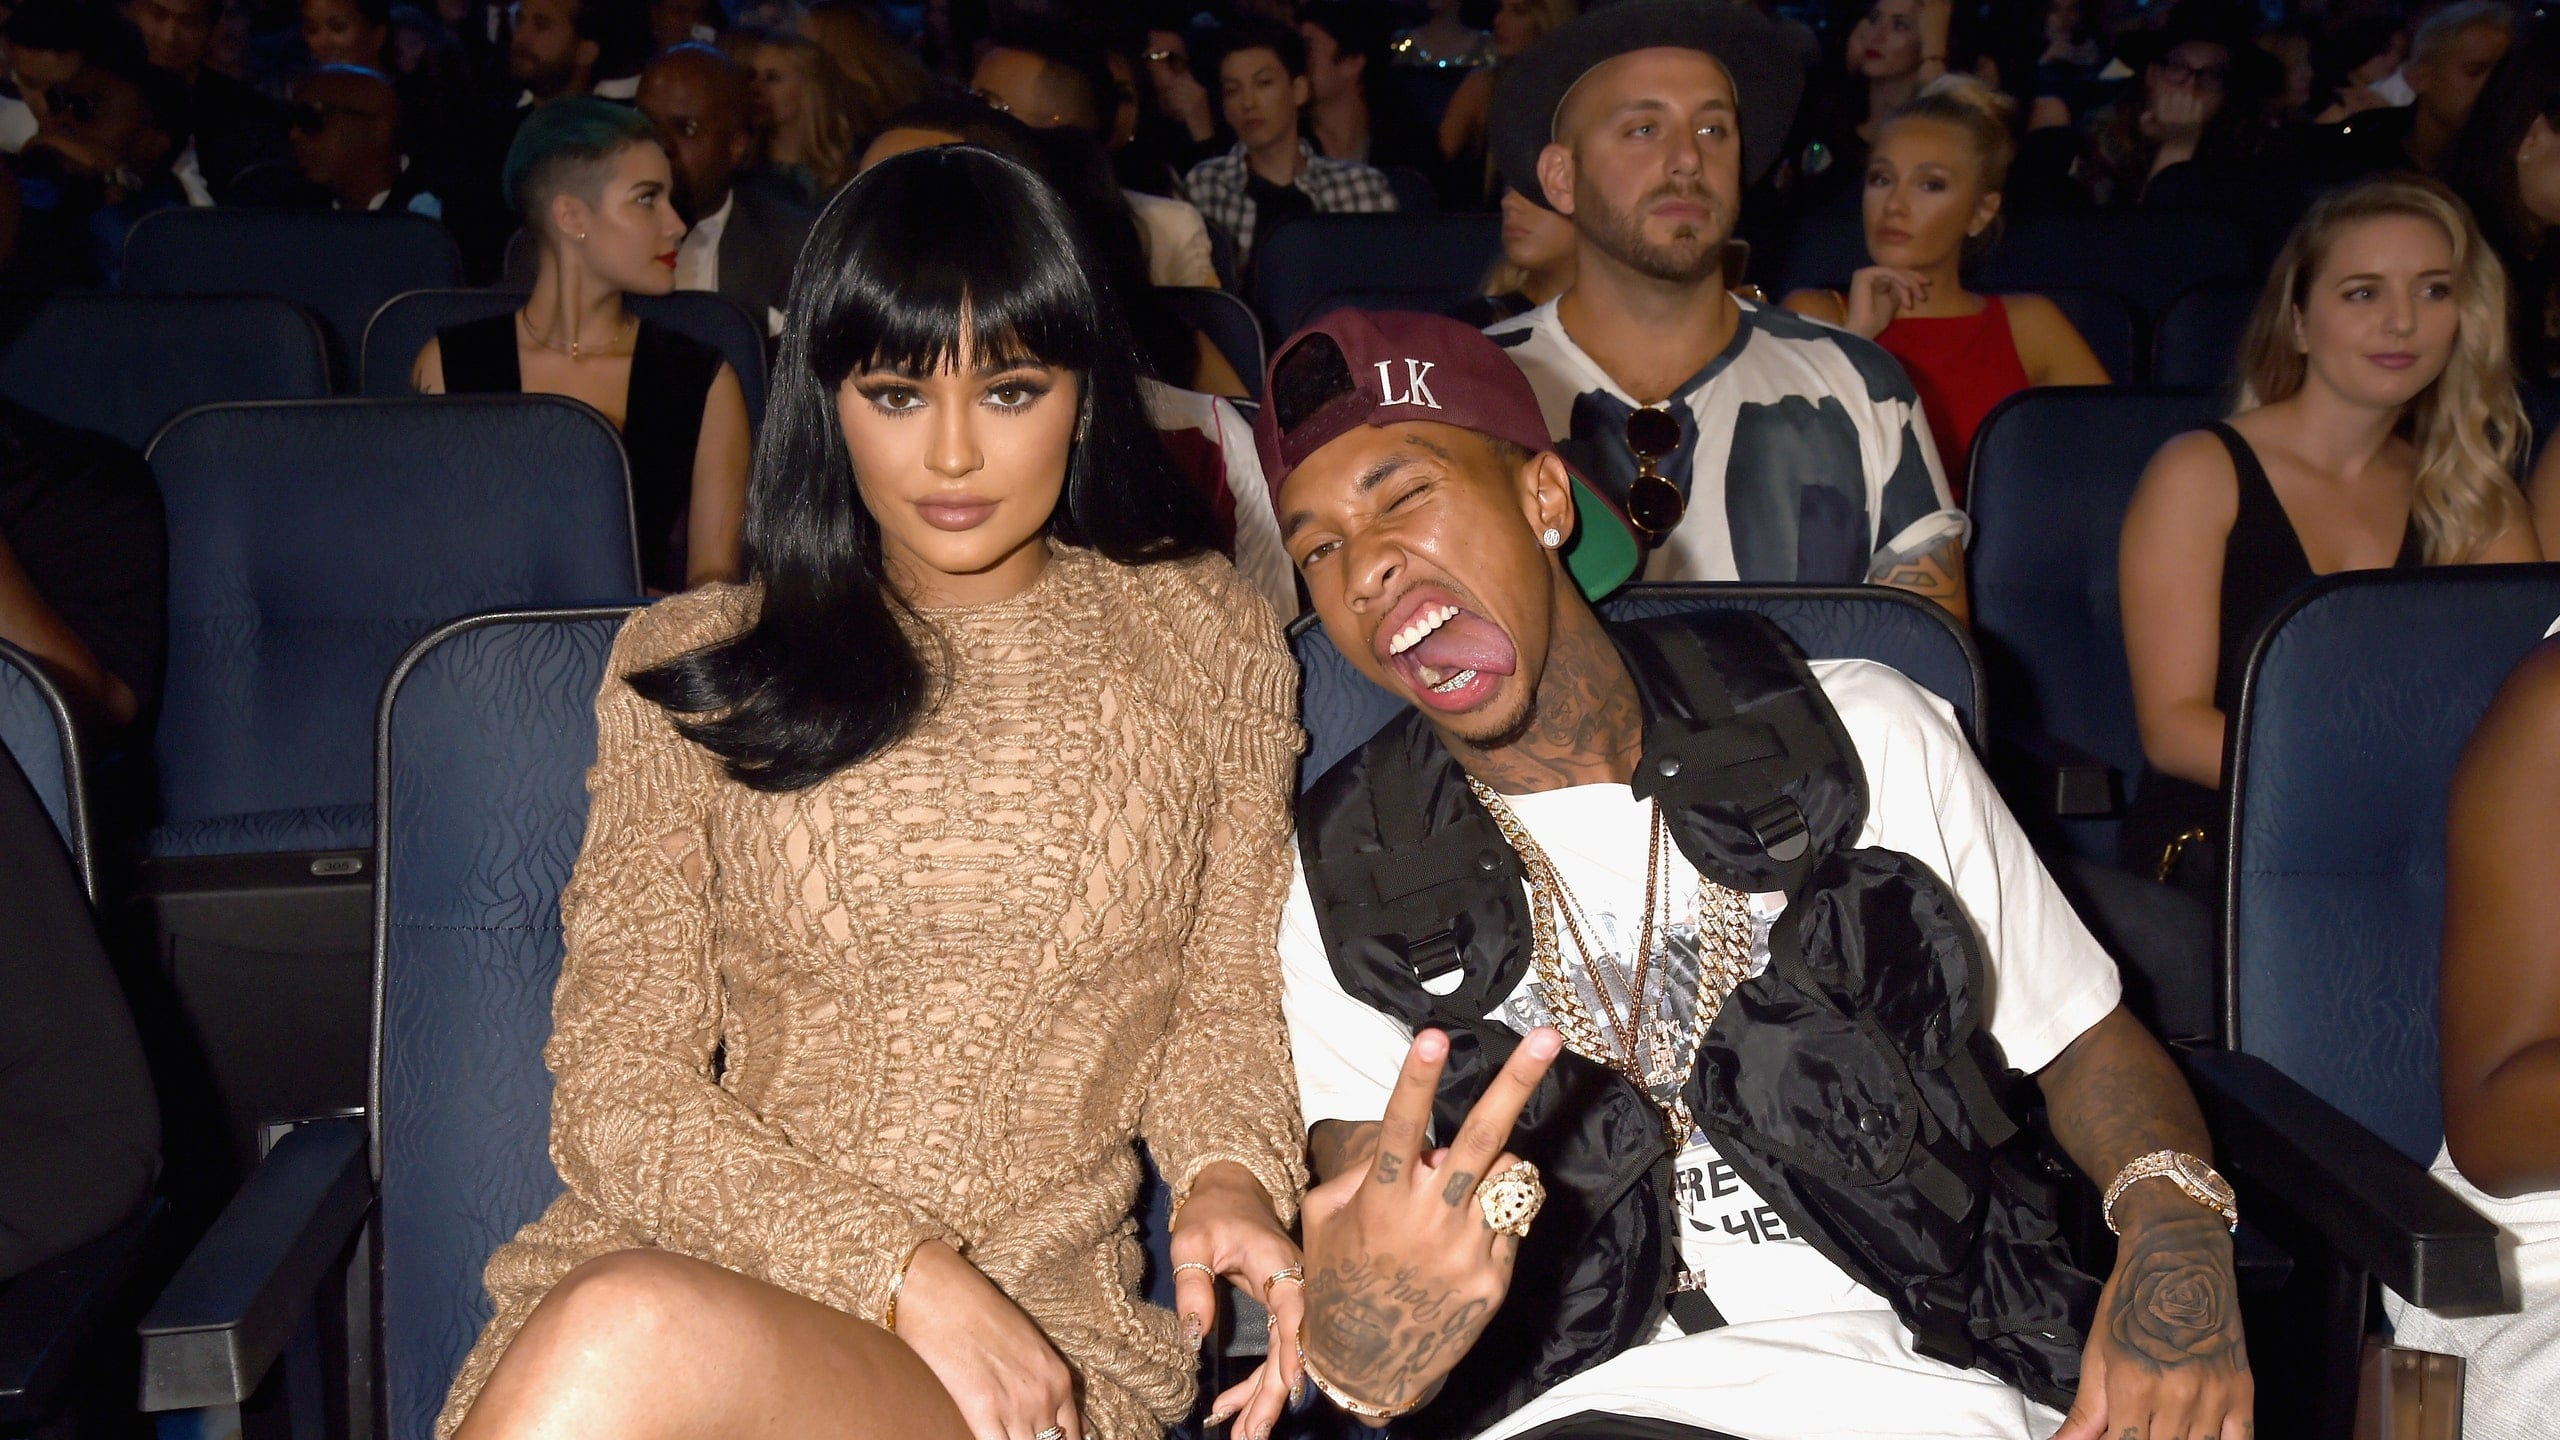 When Did Kylie Jenner and Tyga Broke Up?